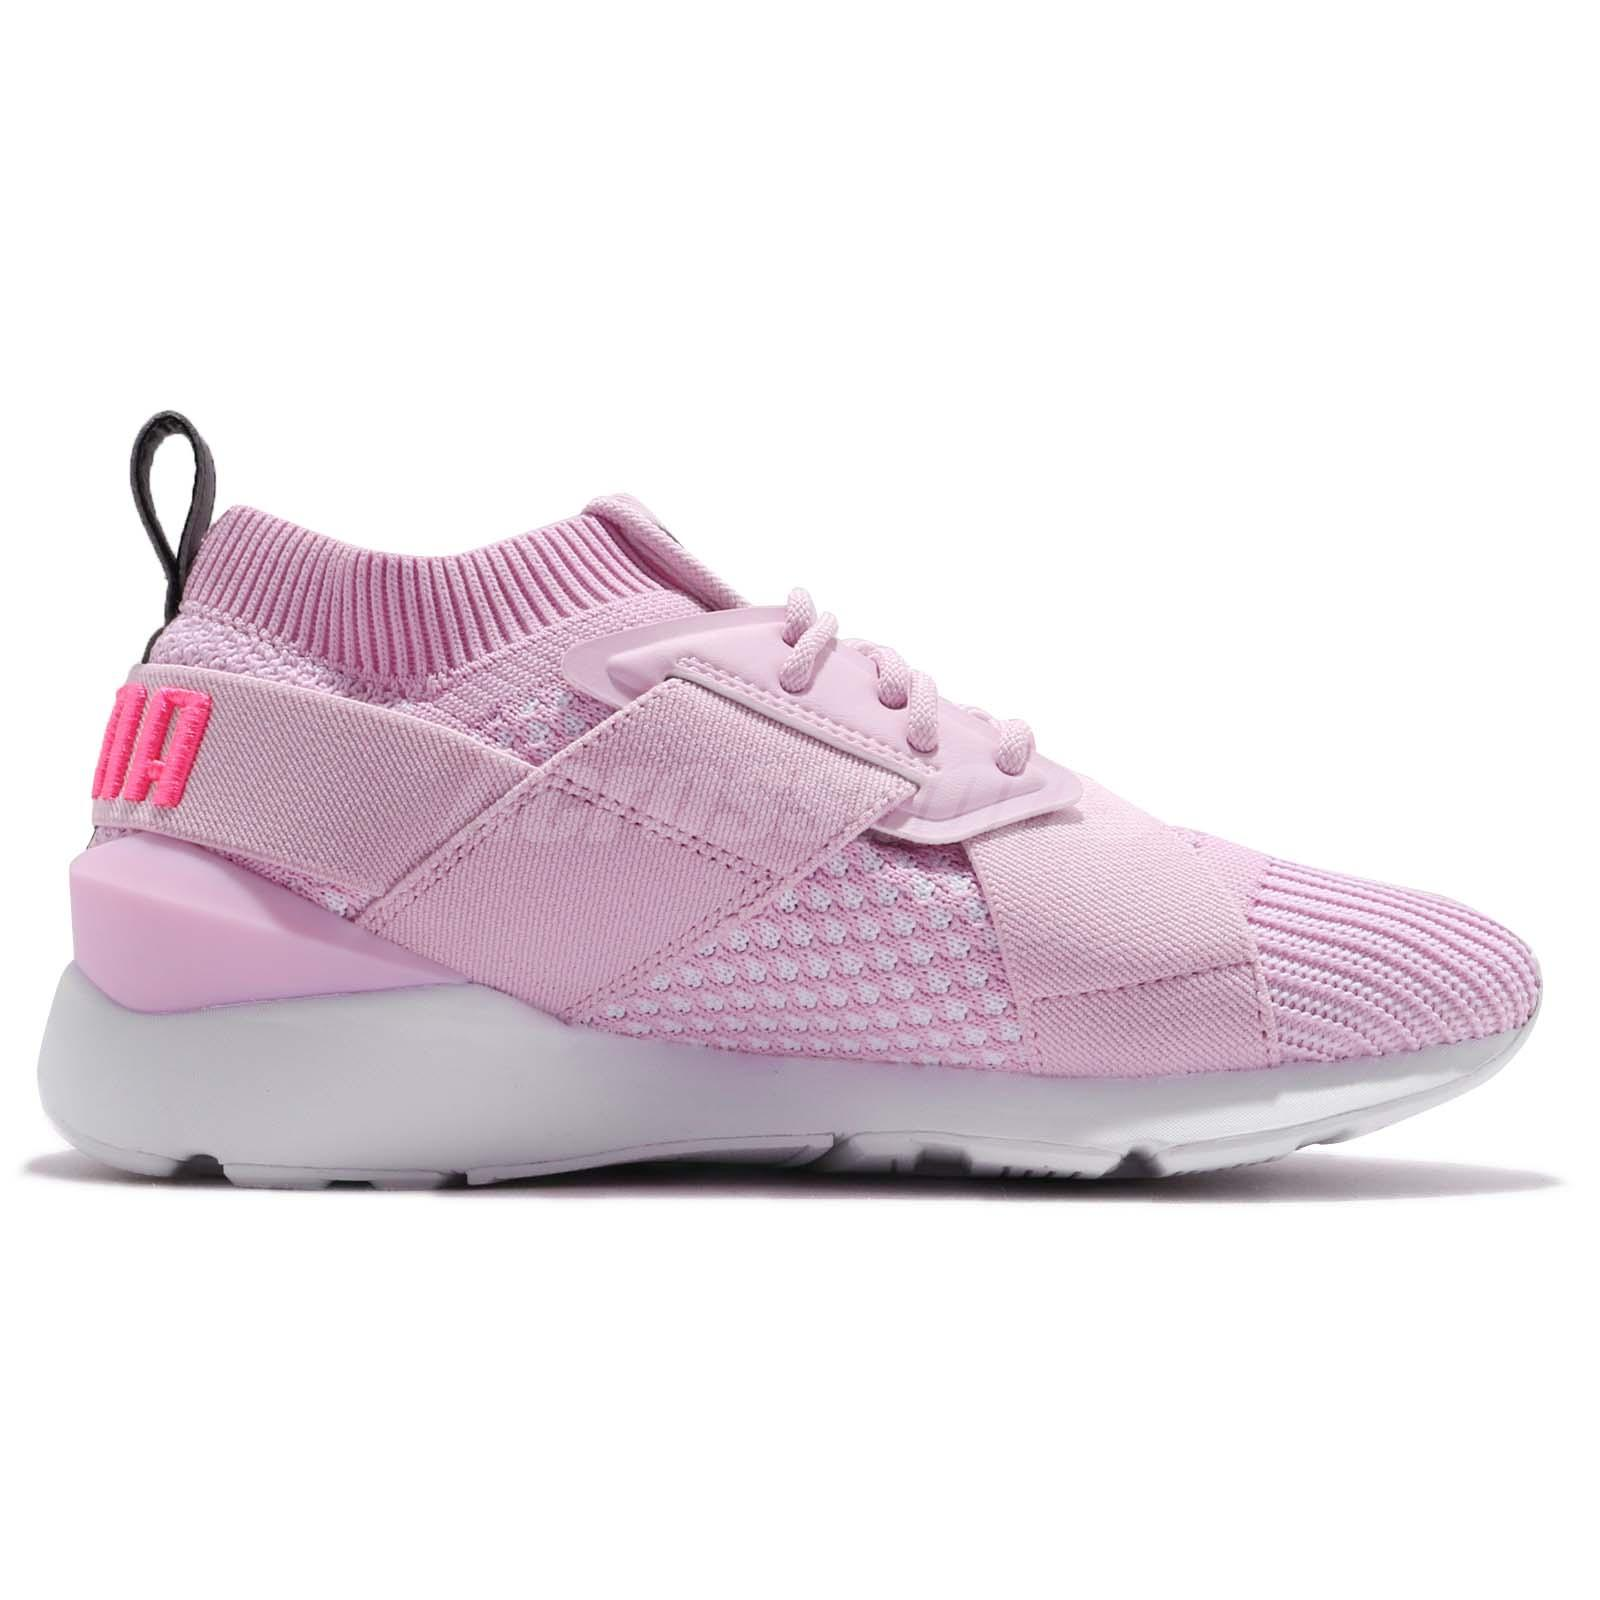 b63632f1f0b24e Puma Muse EvoKnit Wns Winsome Orchid Women Running Shoes Sneakers ...